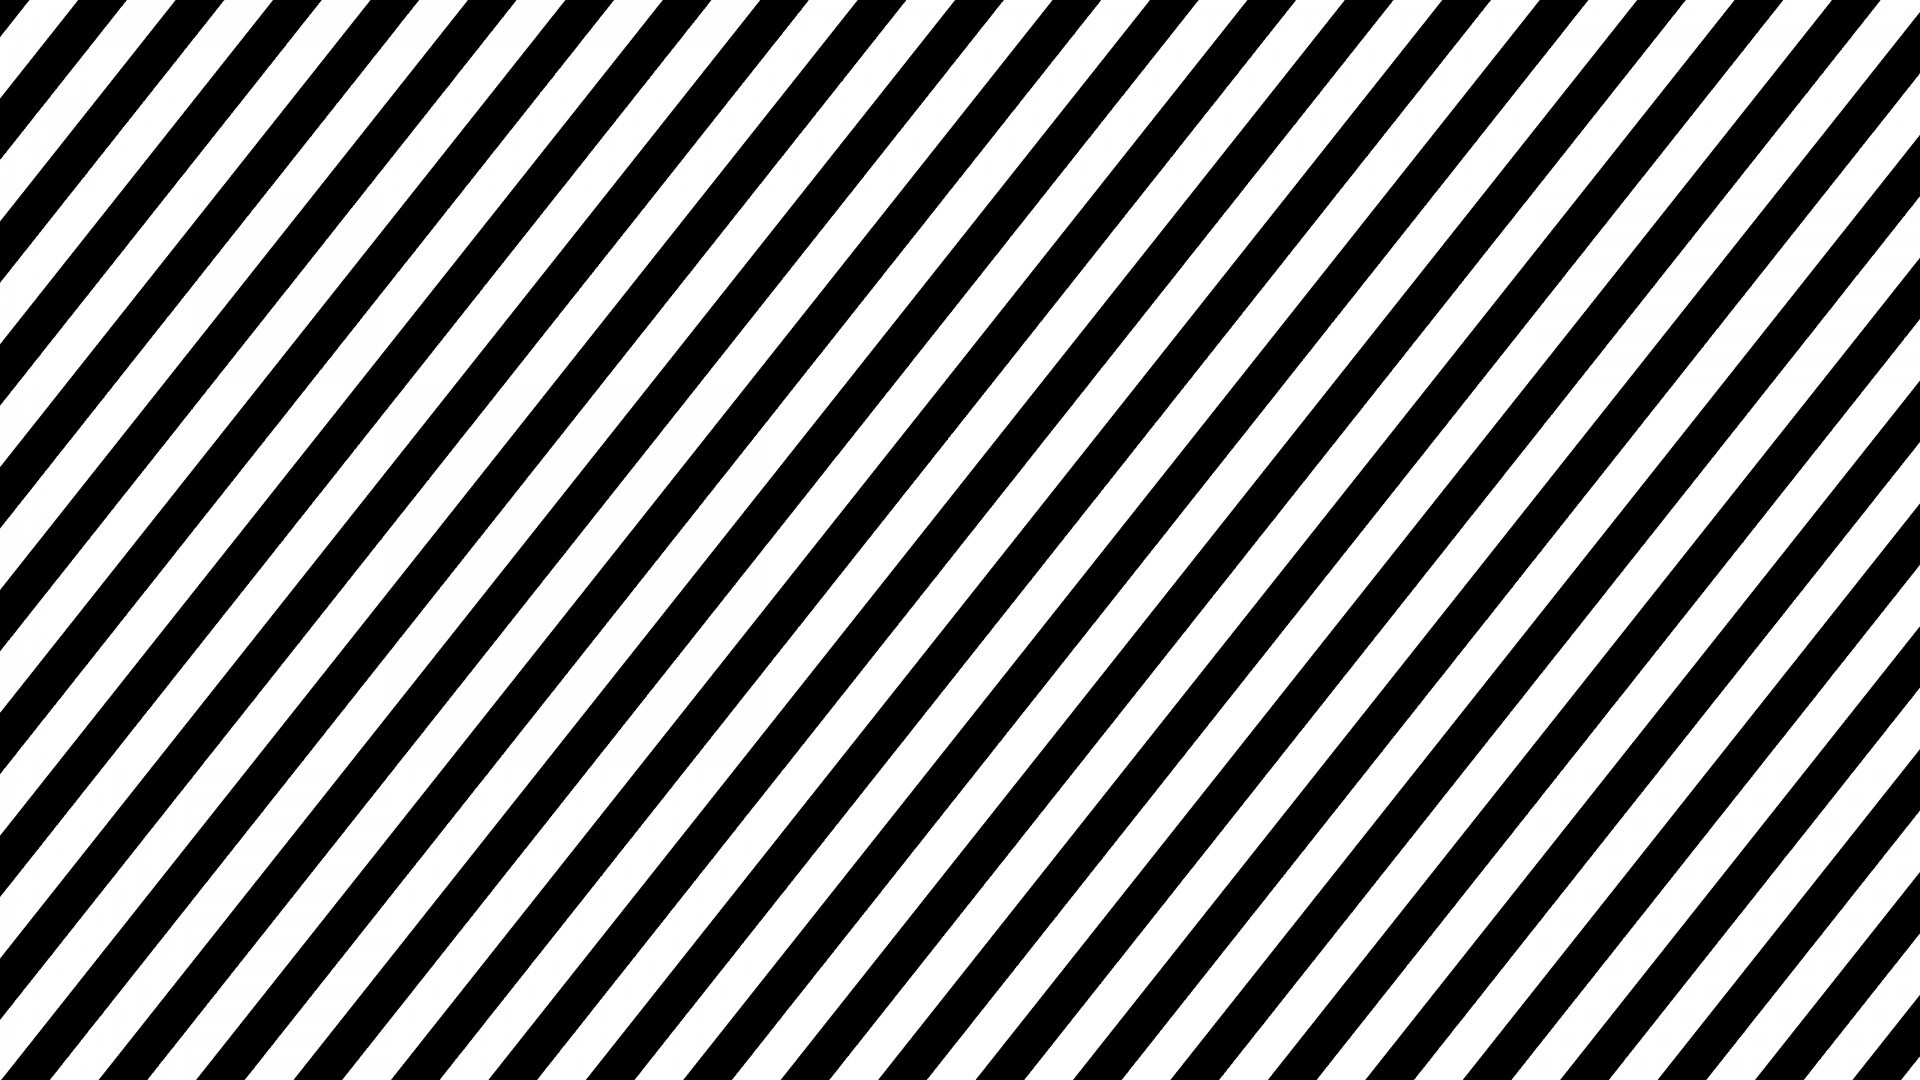 black and white striped background download free awesome